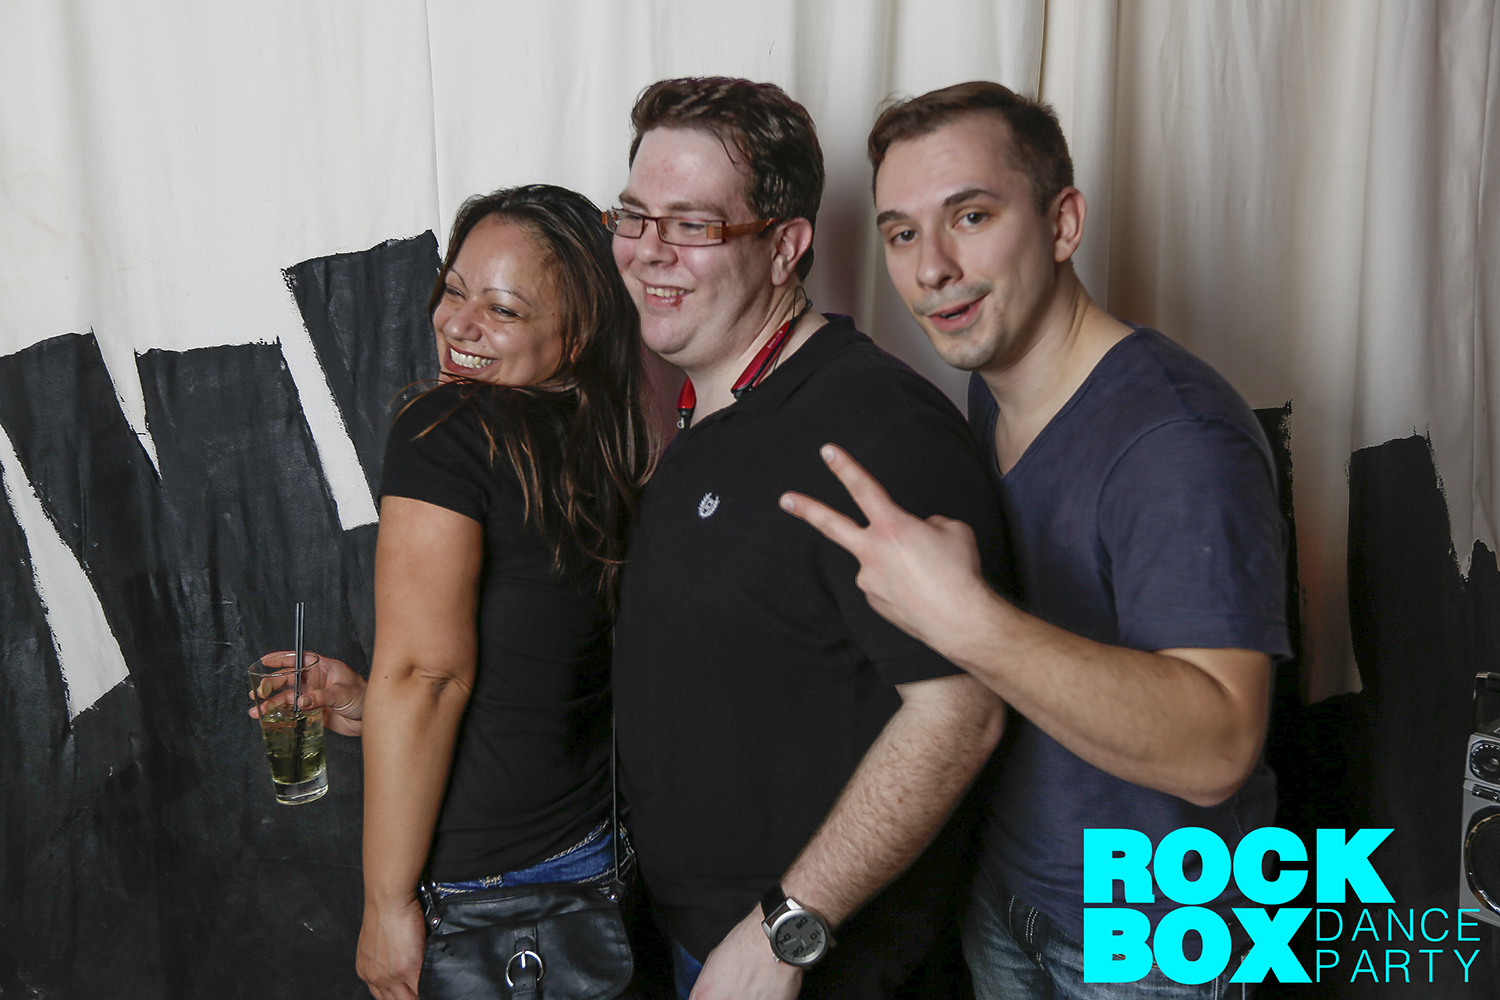 Rock box feb 2015-0033.jpg